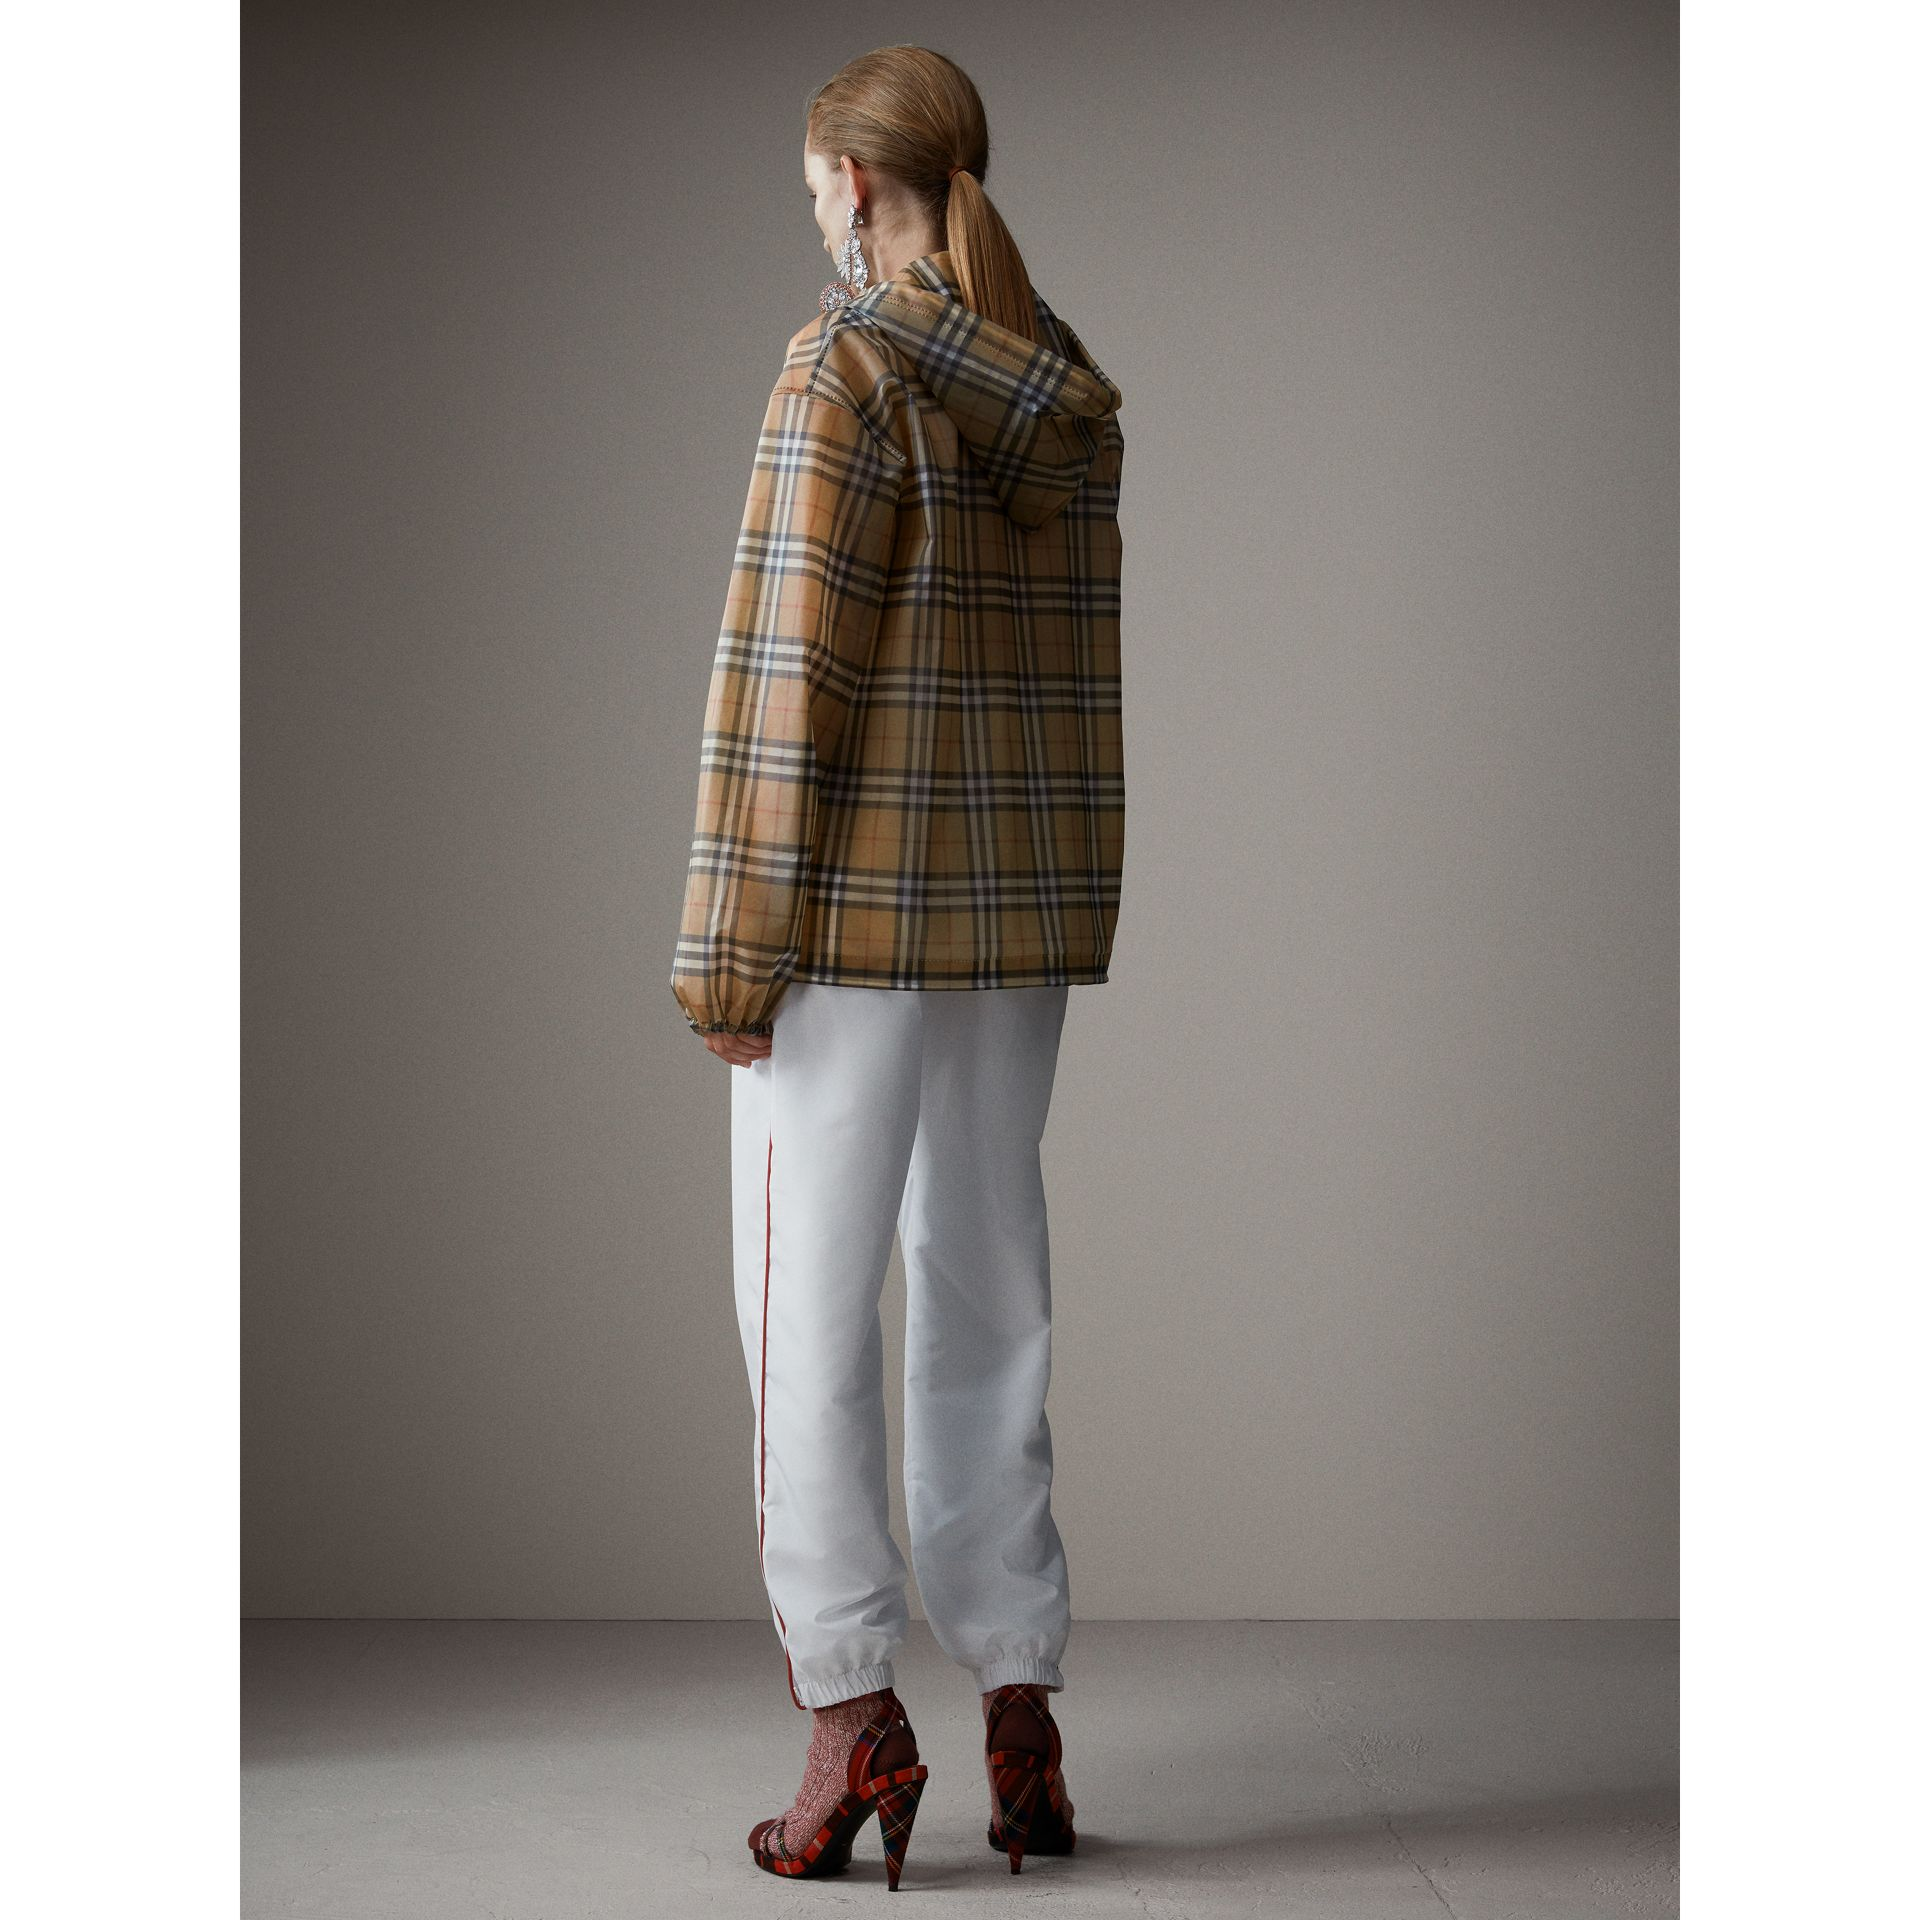 Vintage Check Soft-touch Plastic Cagoule in Antique Yellow - Women | Burberry Hong Kong - gallery image 2